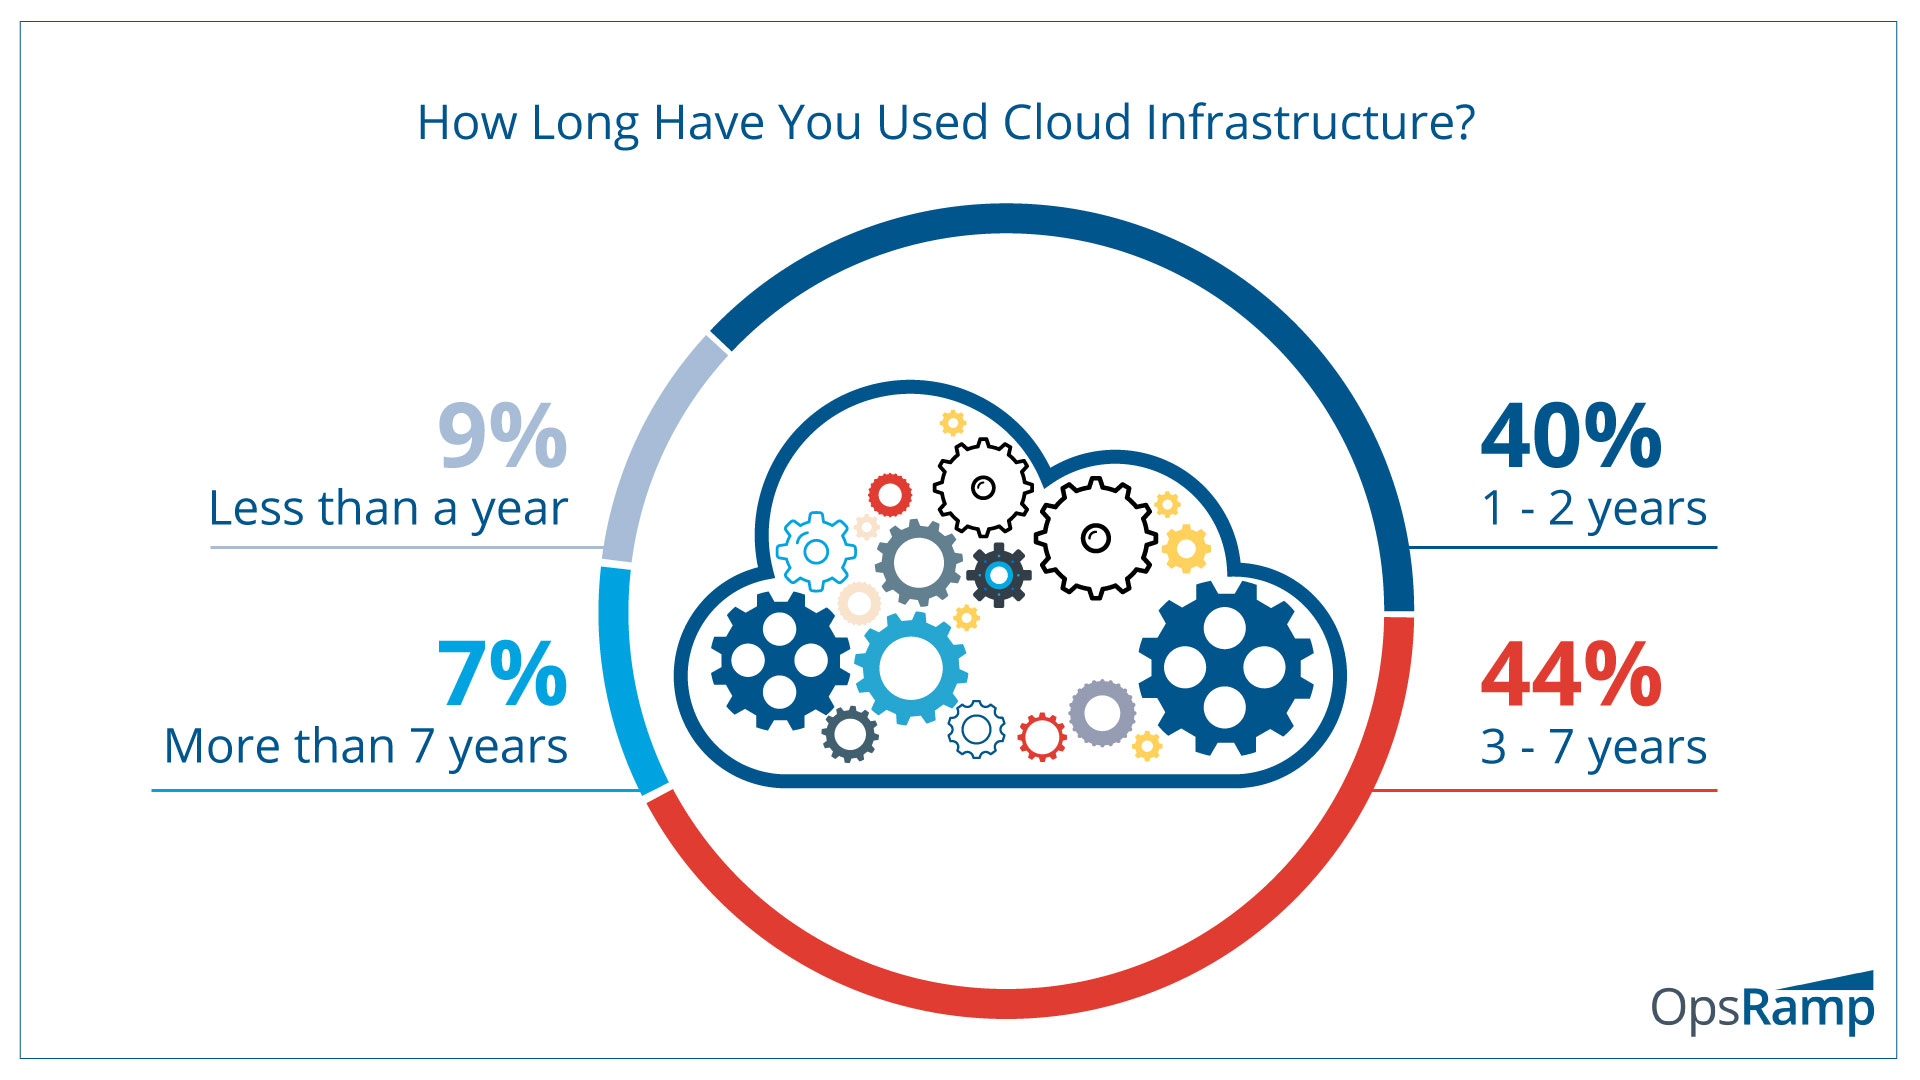 Virtually, All Enterprises Today Use Public Cloud Infrastructure